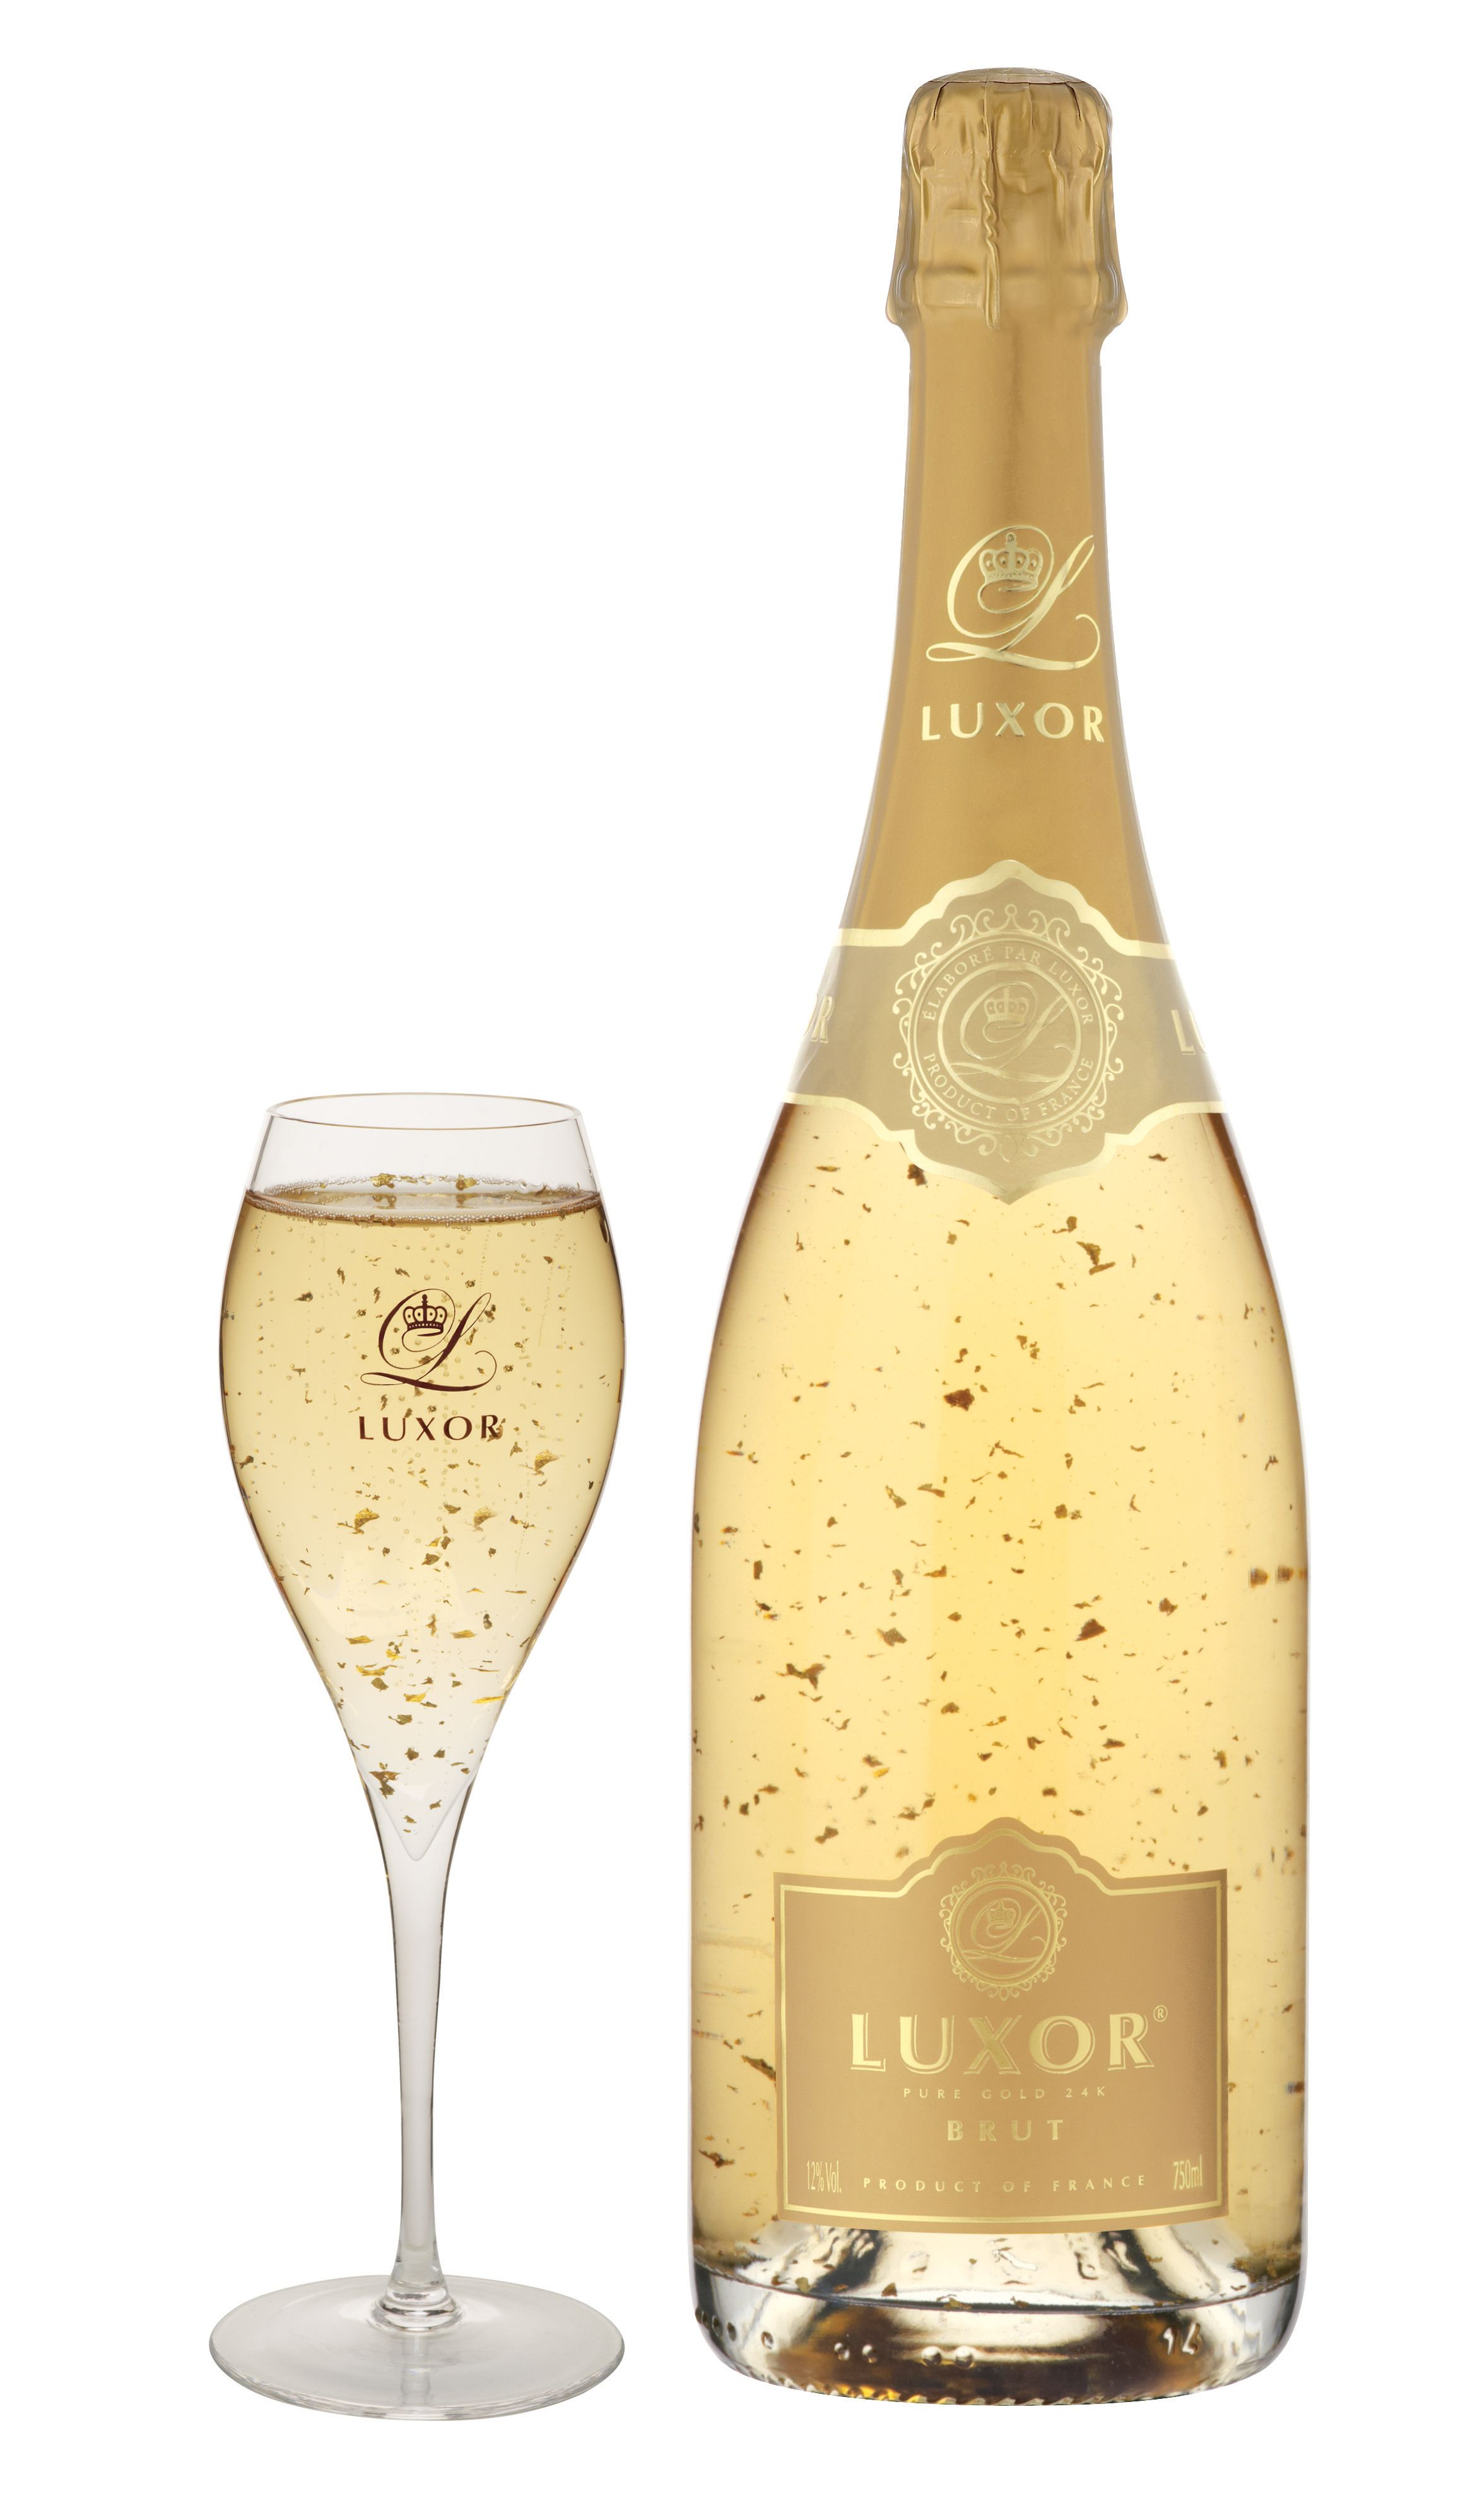 Luxor Brut Champagne a blend of Brut Champagne and food